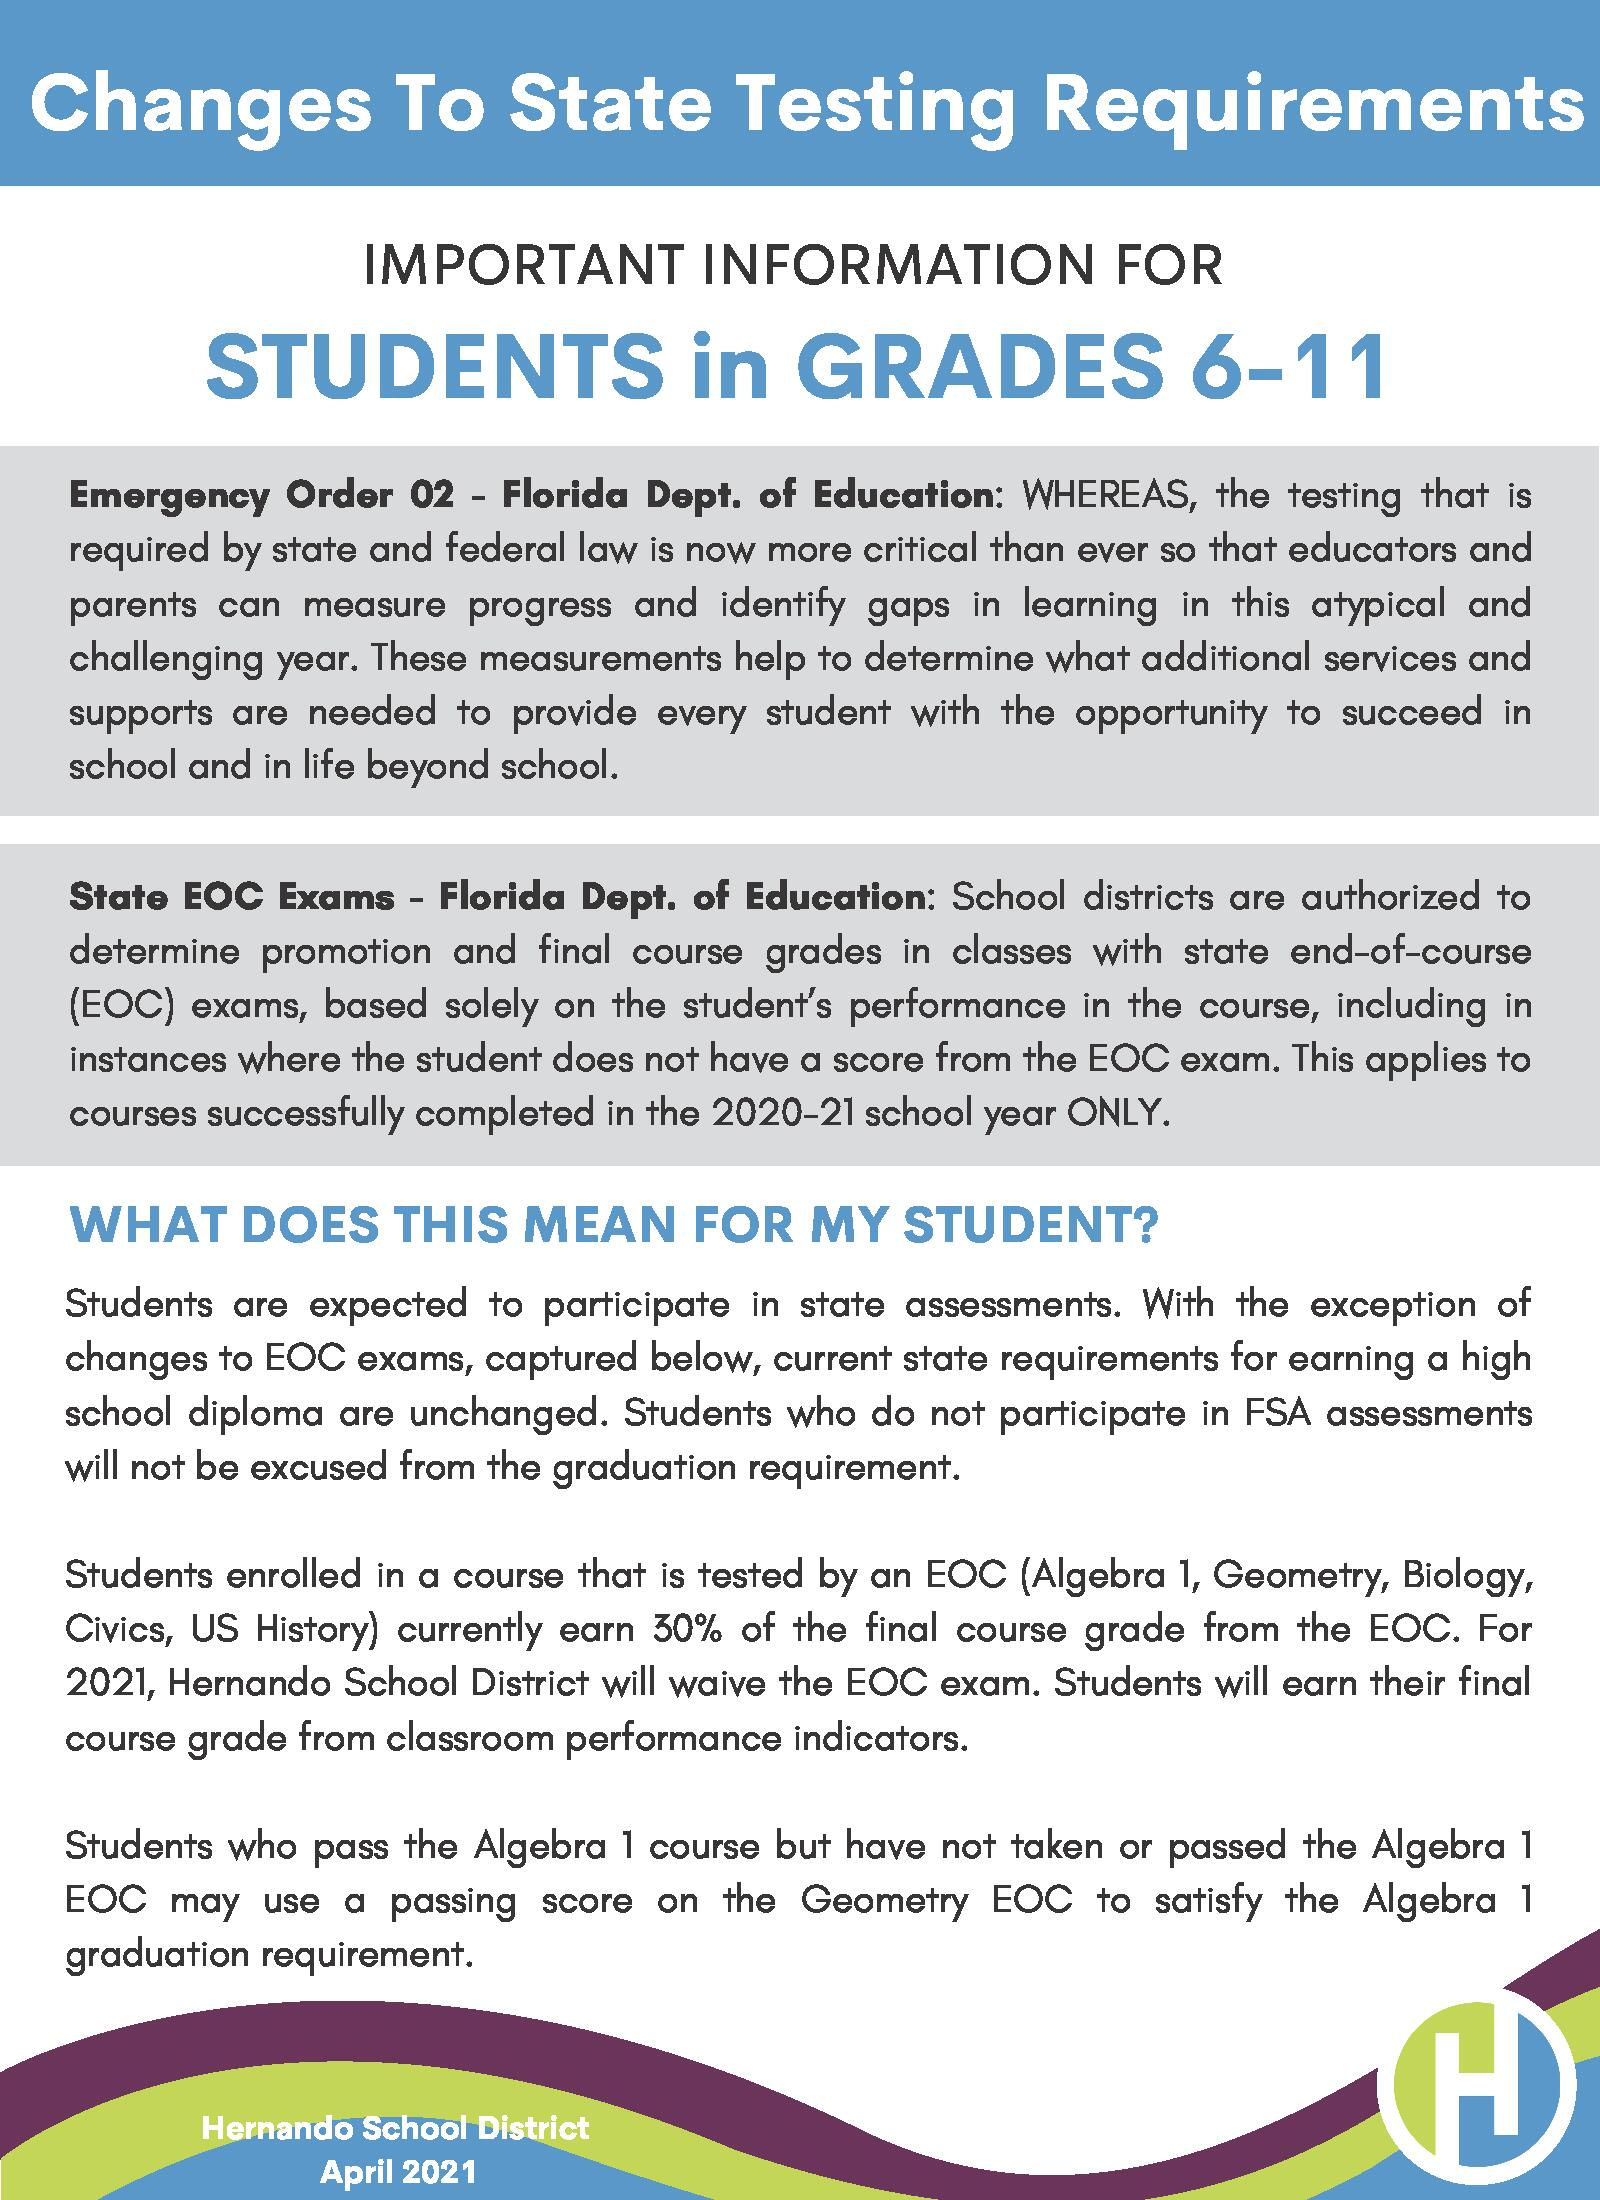 Guide to Understanding Changes to the State Testing for Grades 6-11